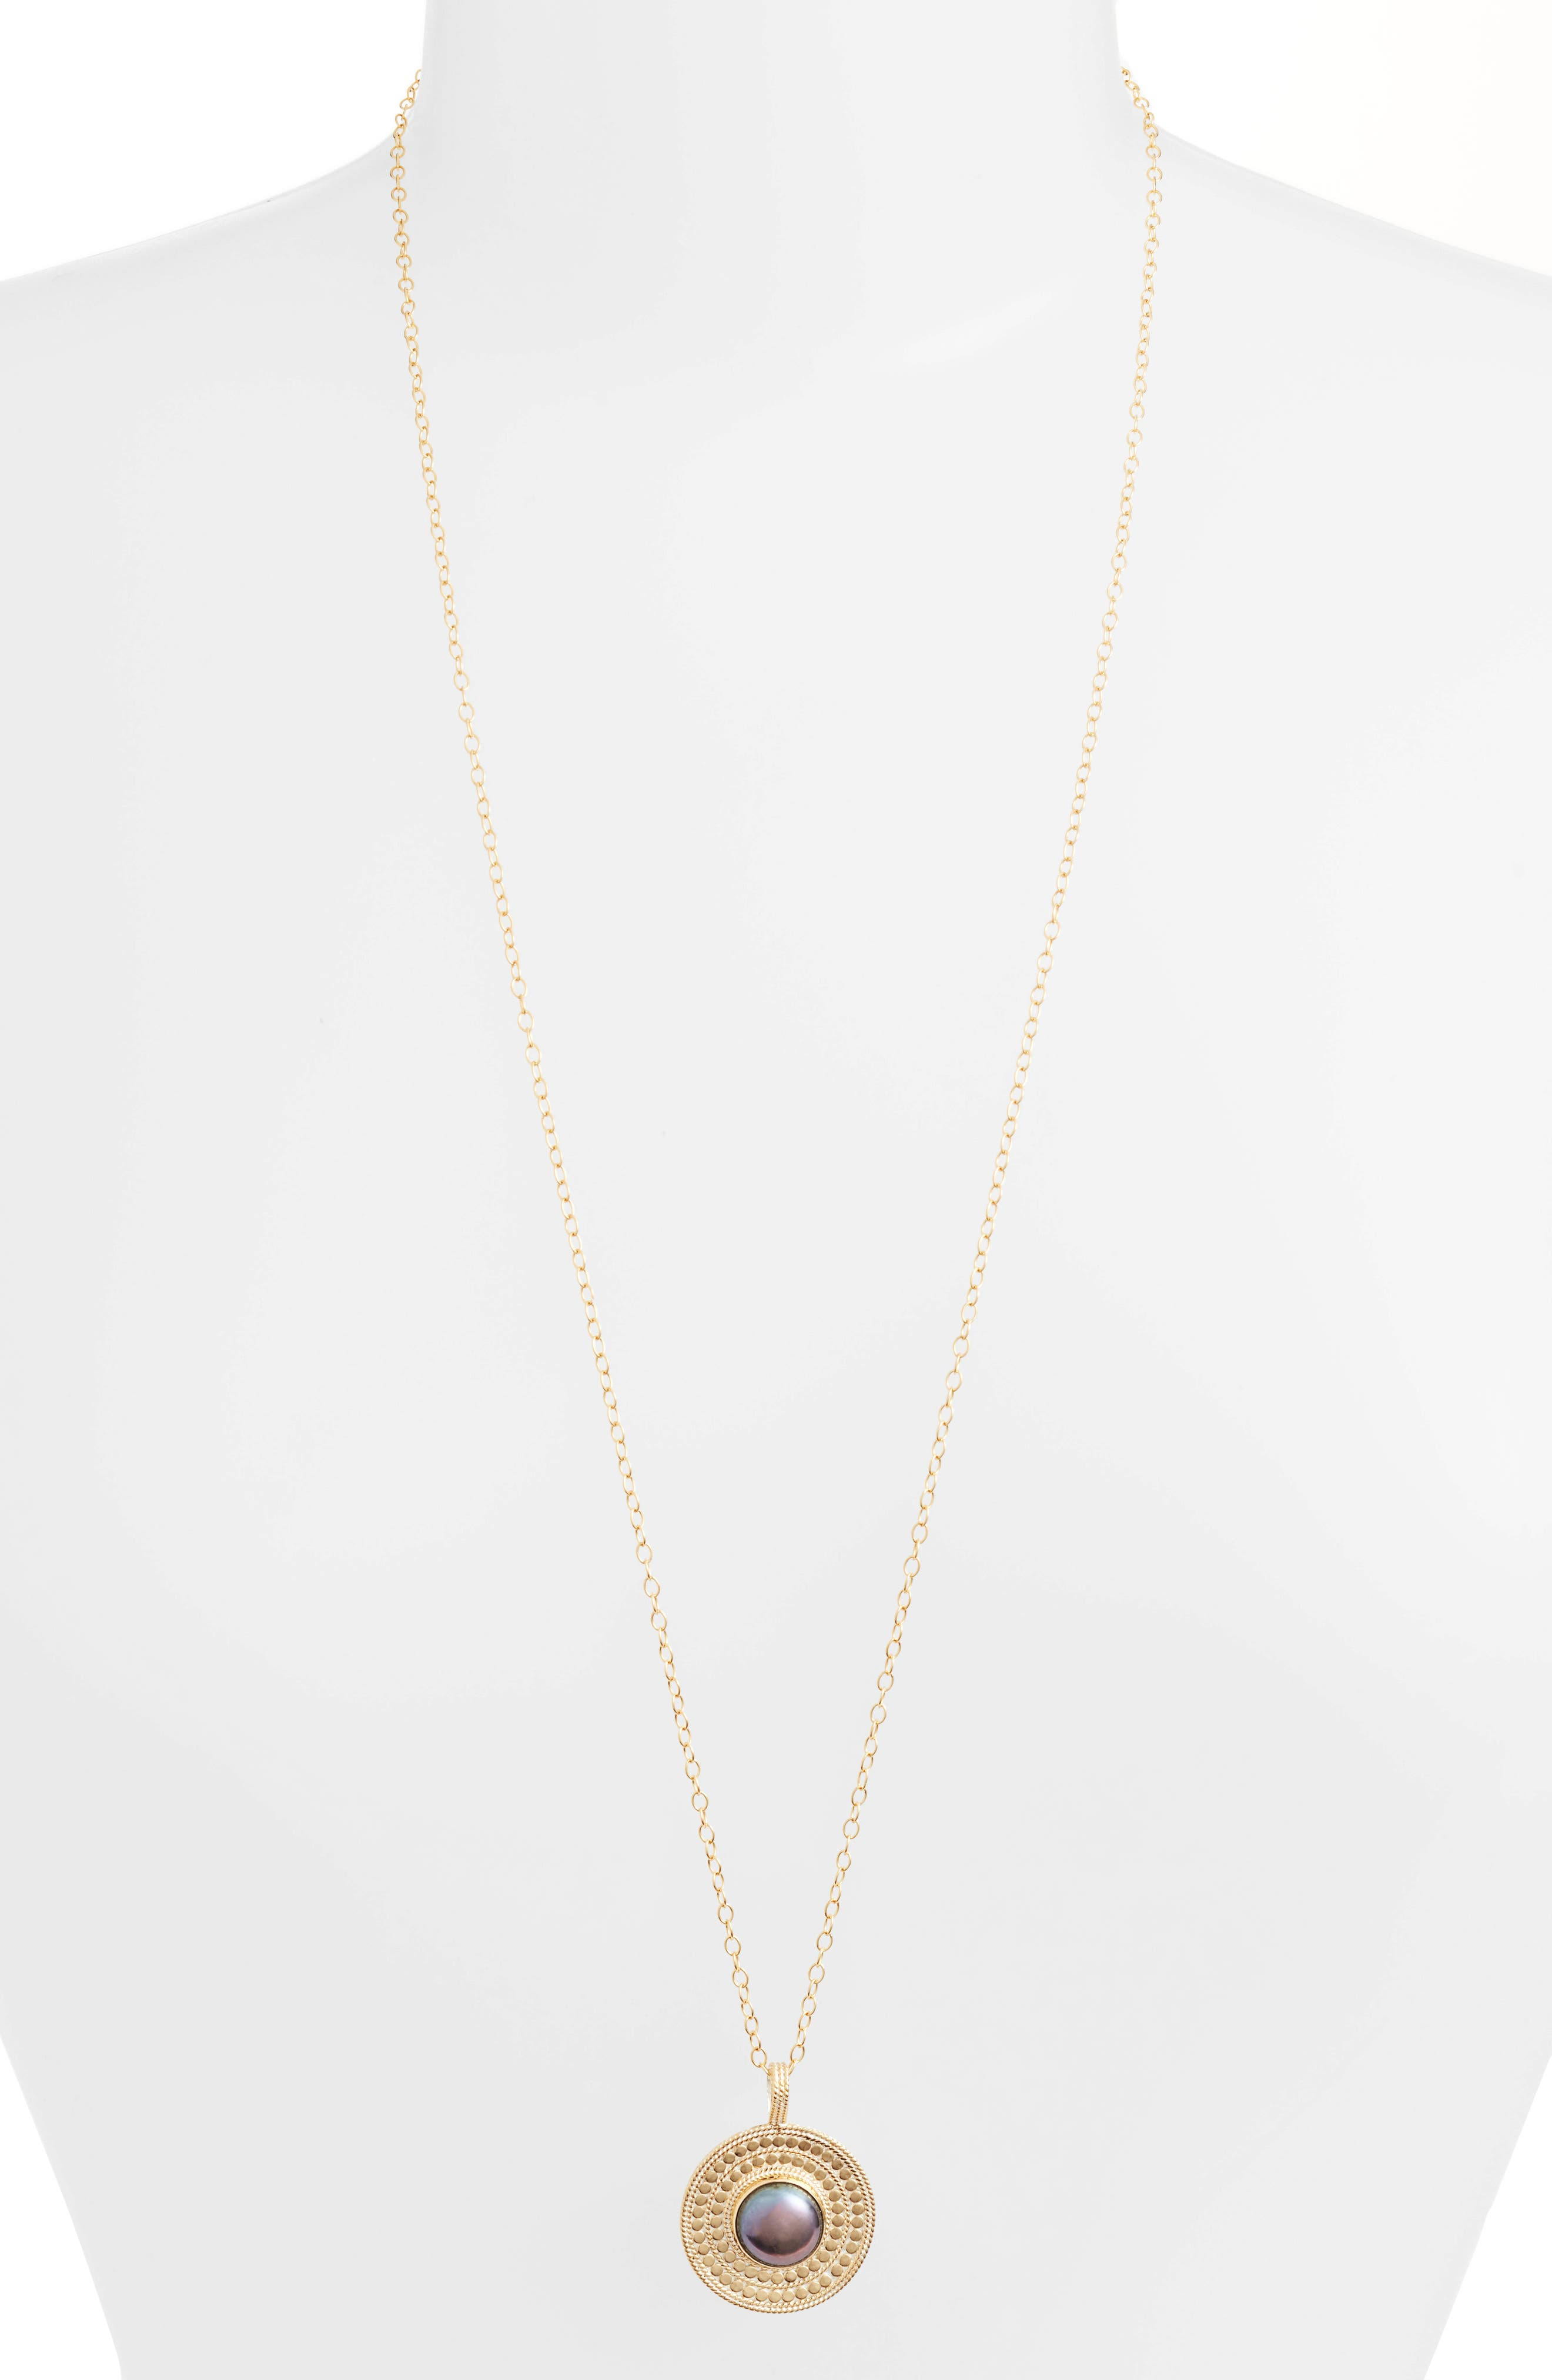 Genuine Blue Pearl Medallion Necklace,                         Main,                         color, Gold/ Blue Pearl